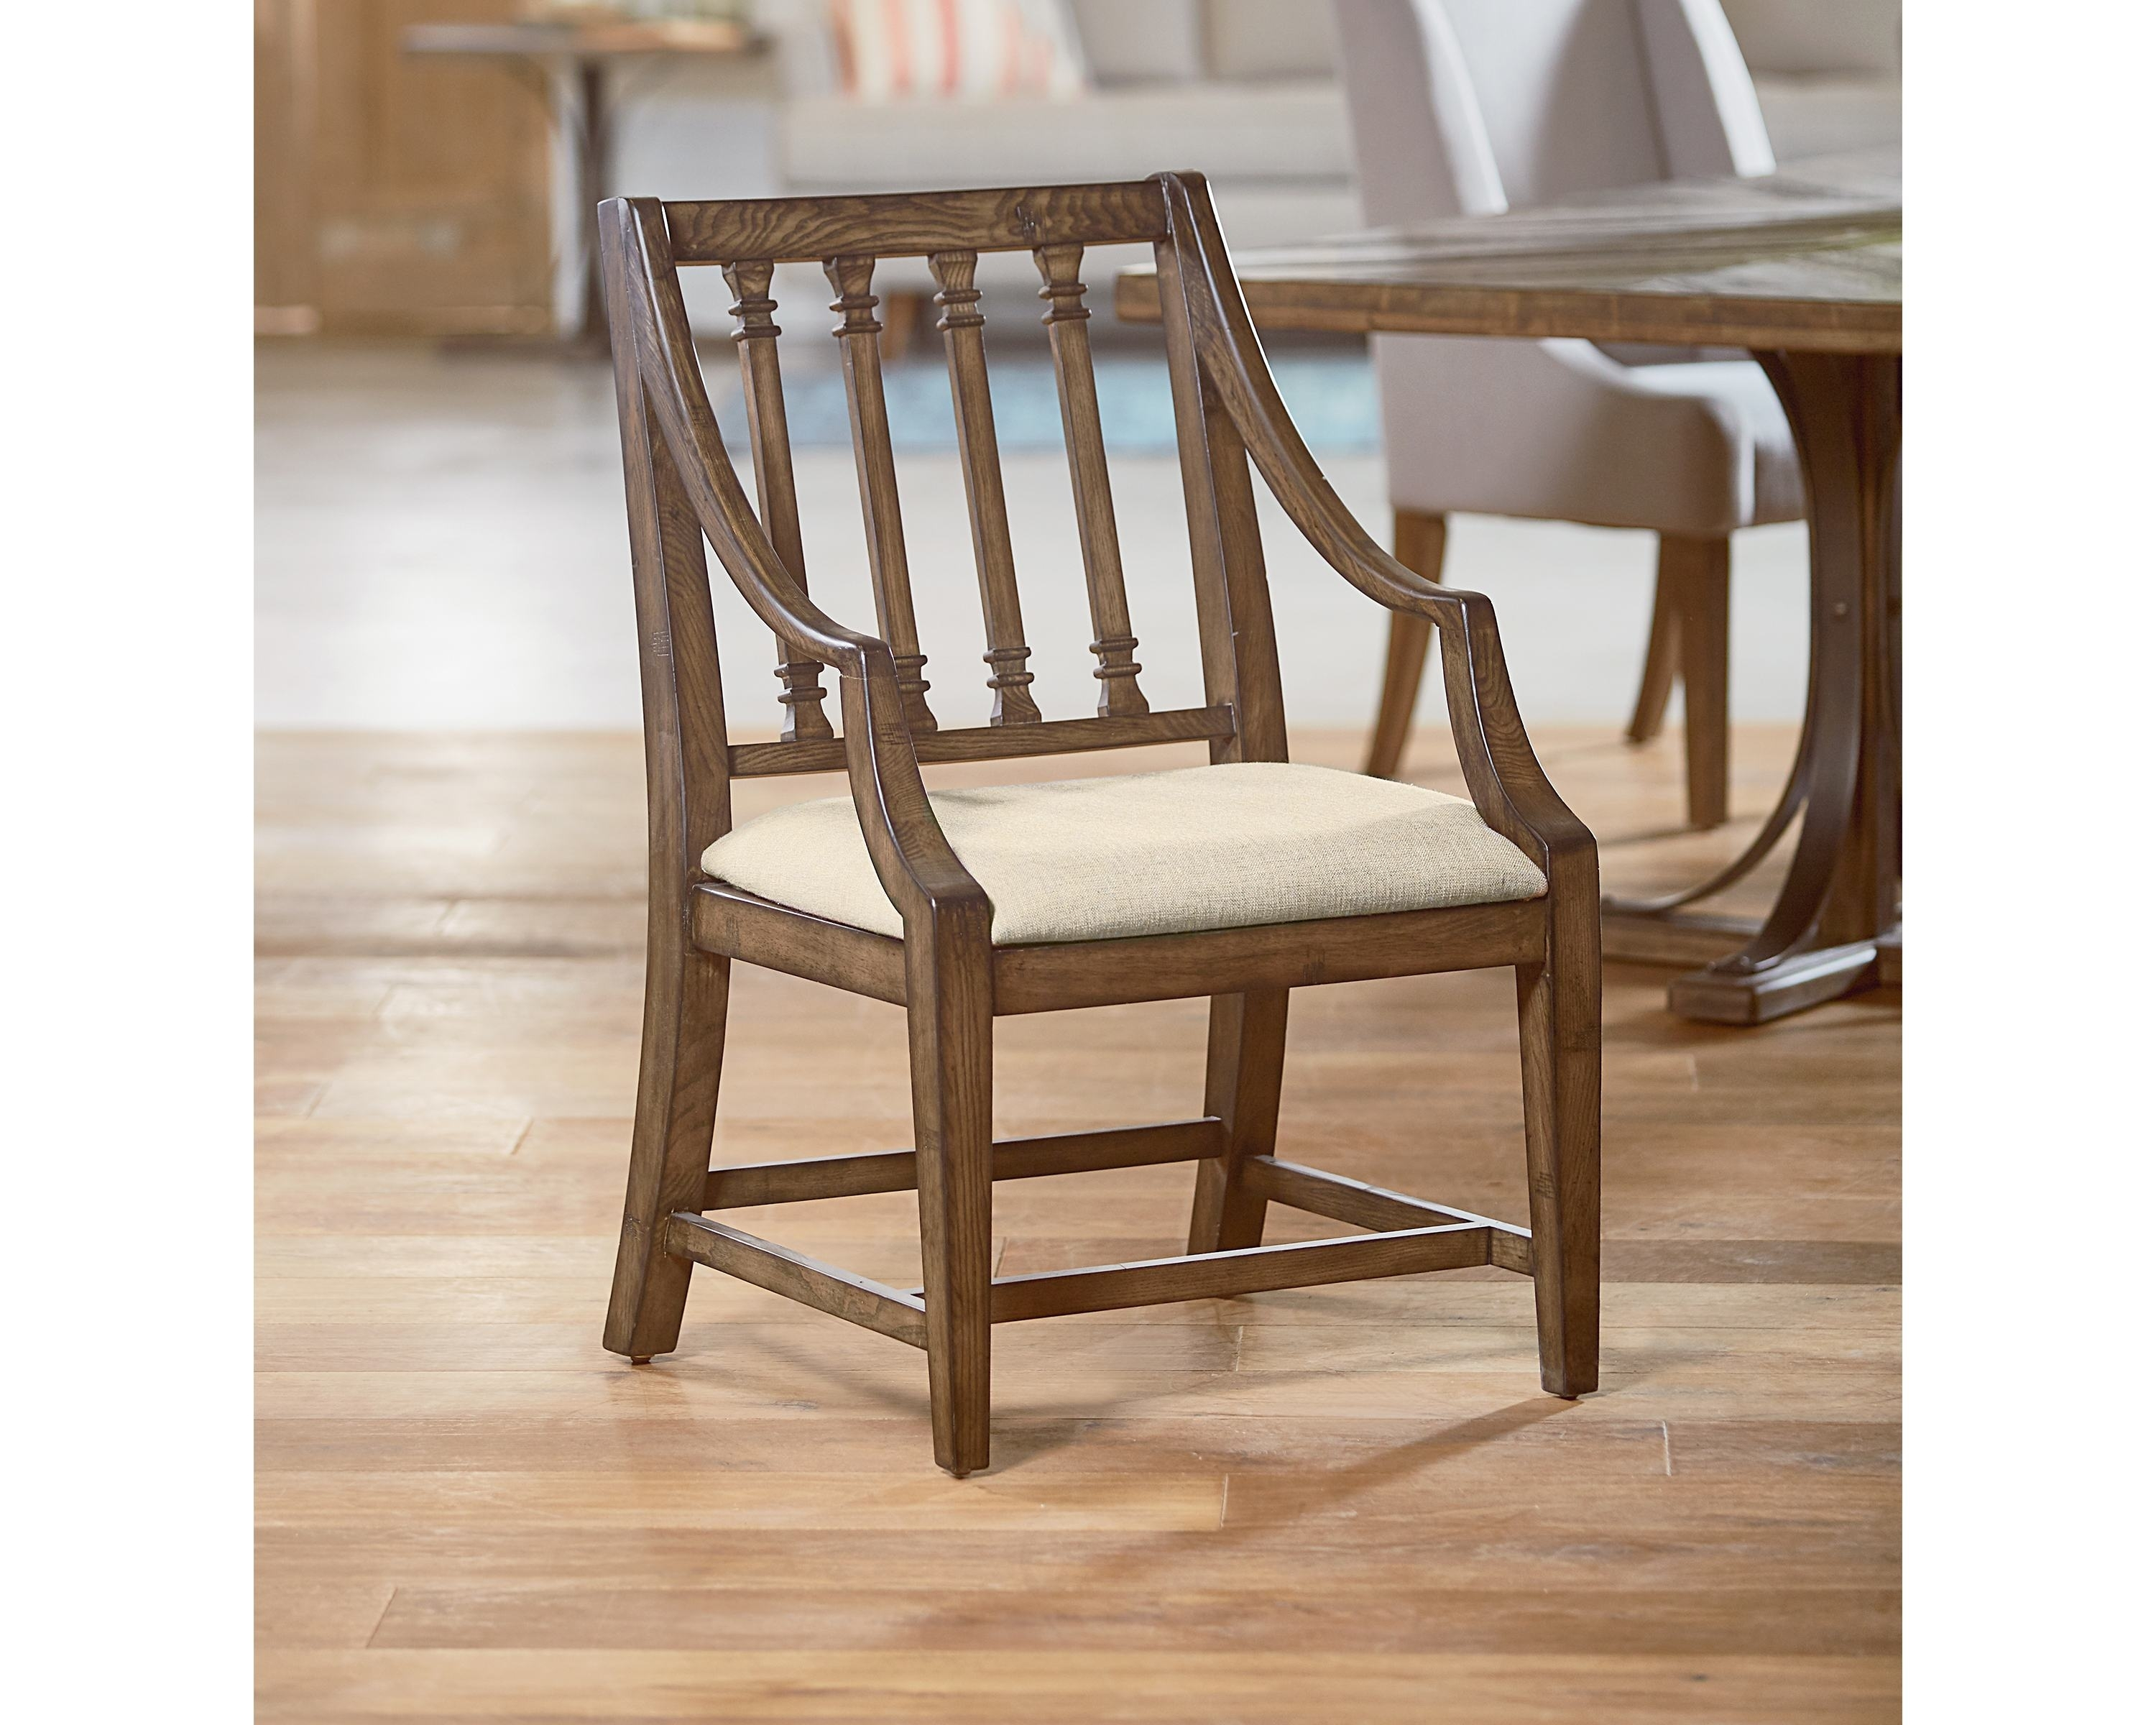 Inspiration about Revival Arm Chair – Magnolia Home In Trendy Magnolia Home Revival Jo's White Arm Chairs (#4 of 20)